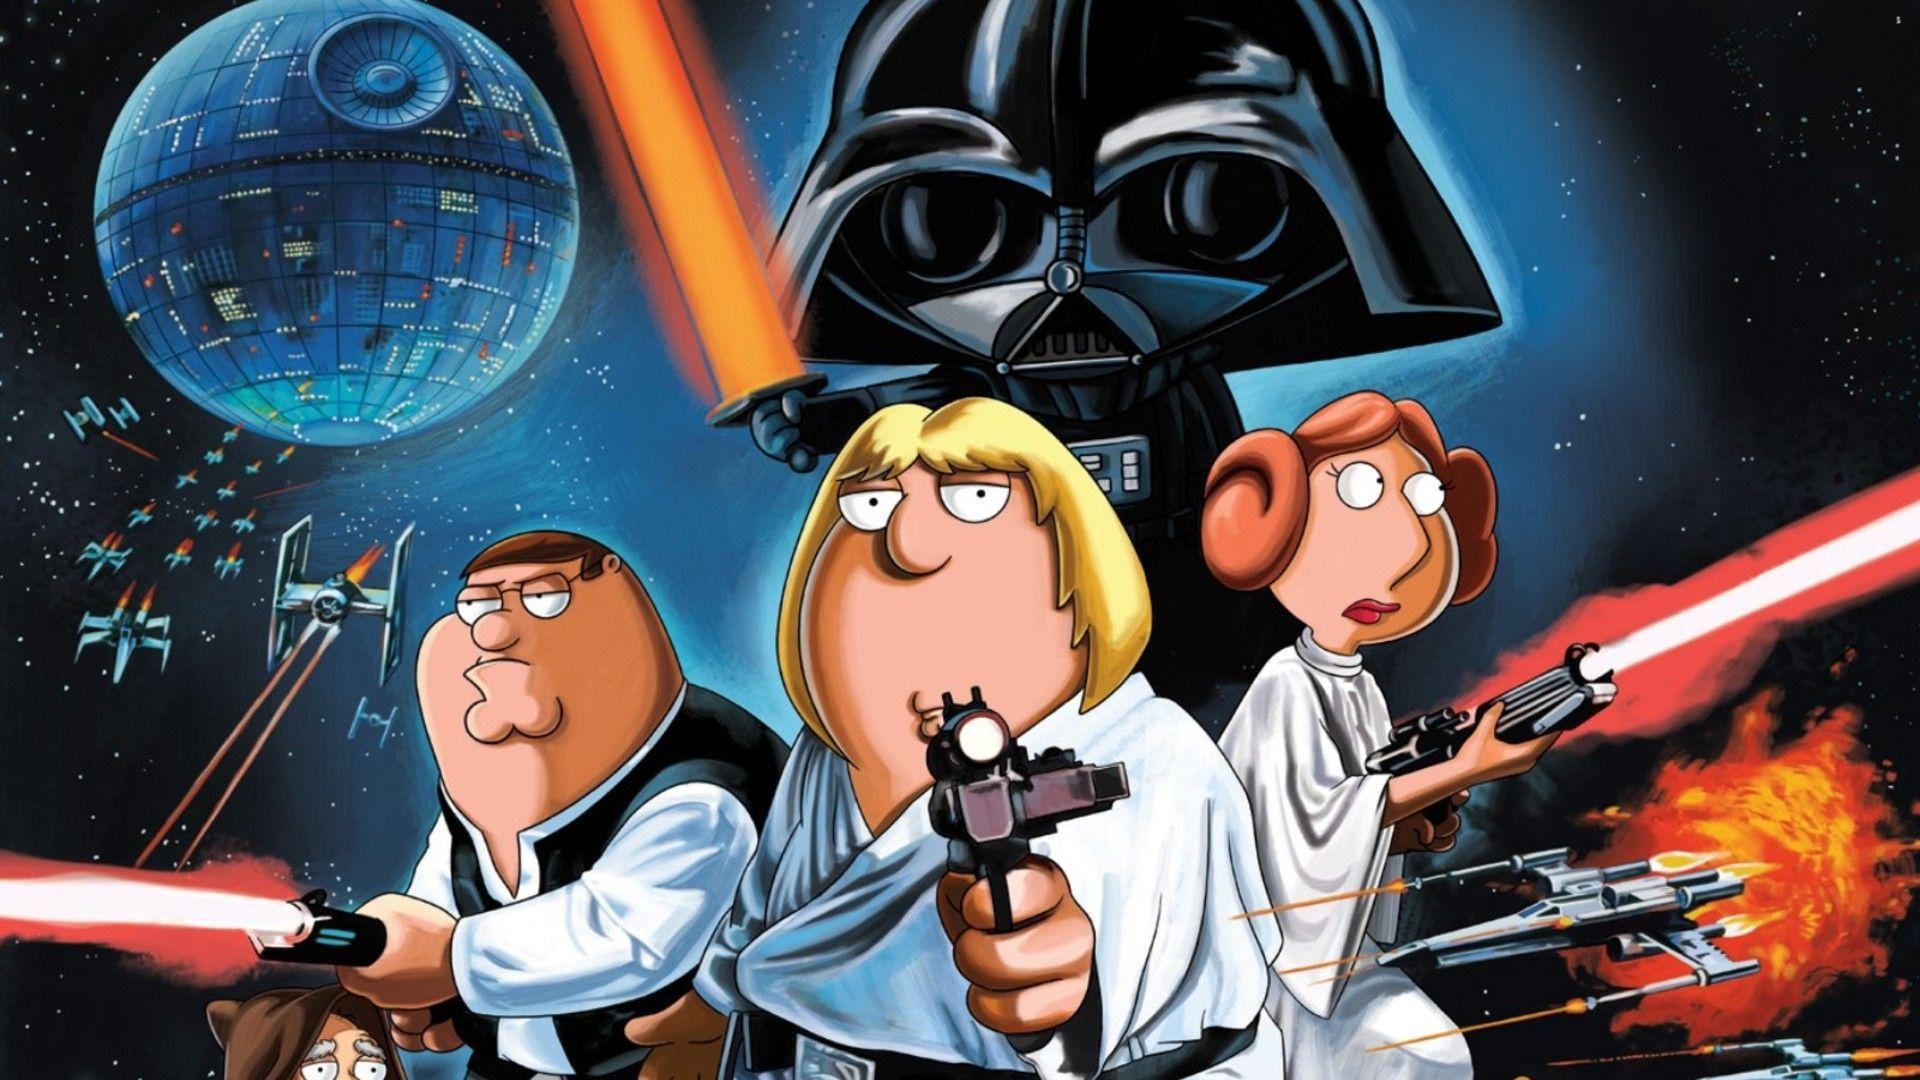 Family Guy Star Wars Wallpapers Wallpaper Cave